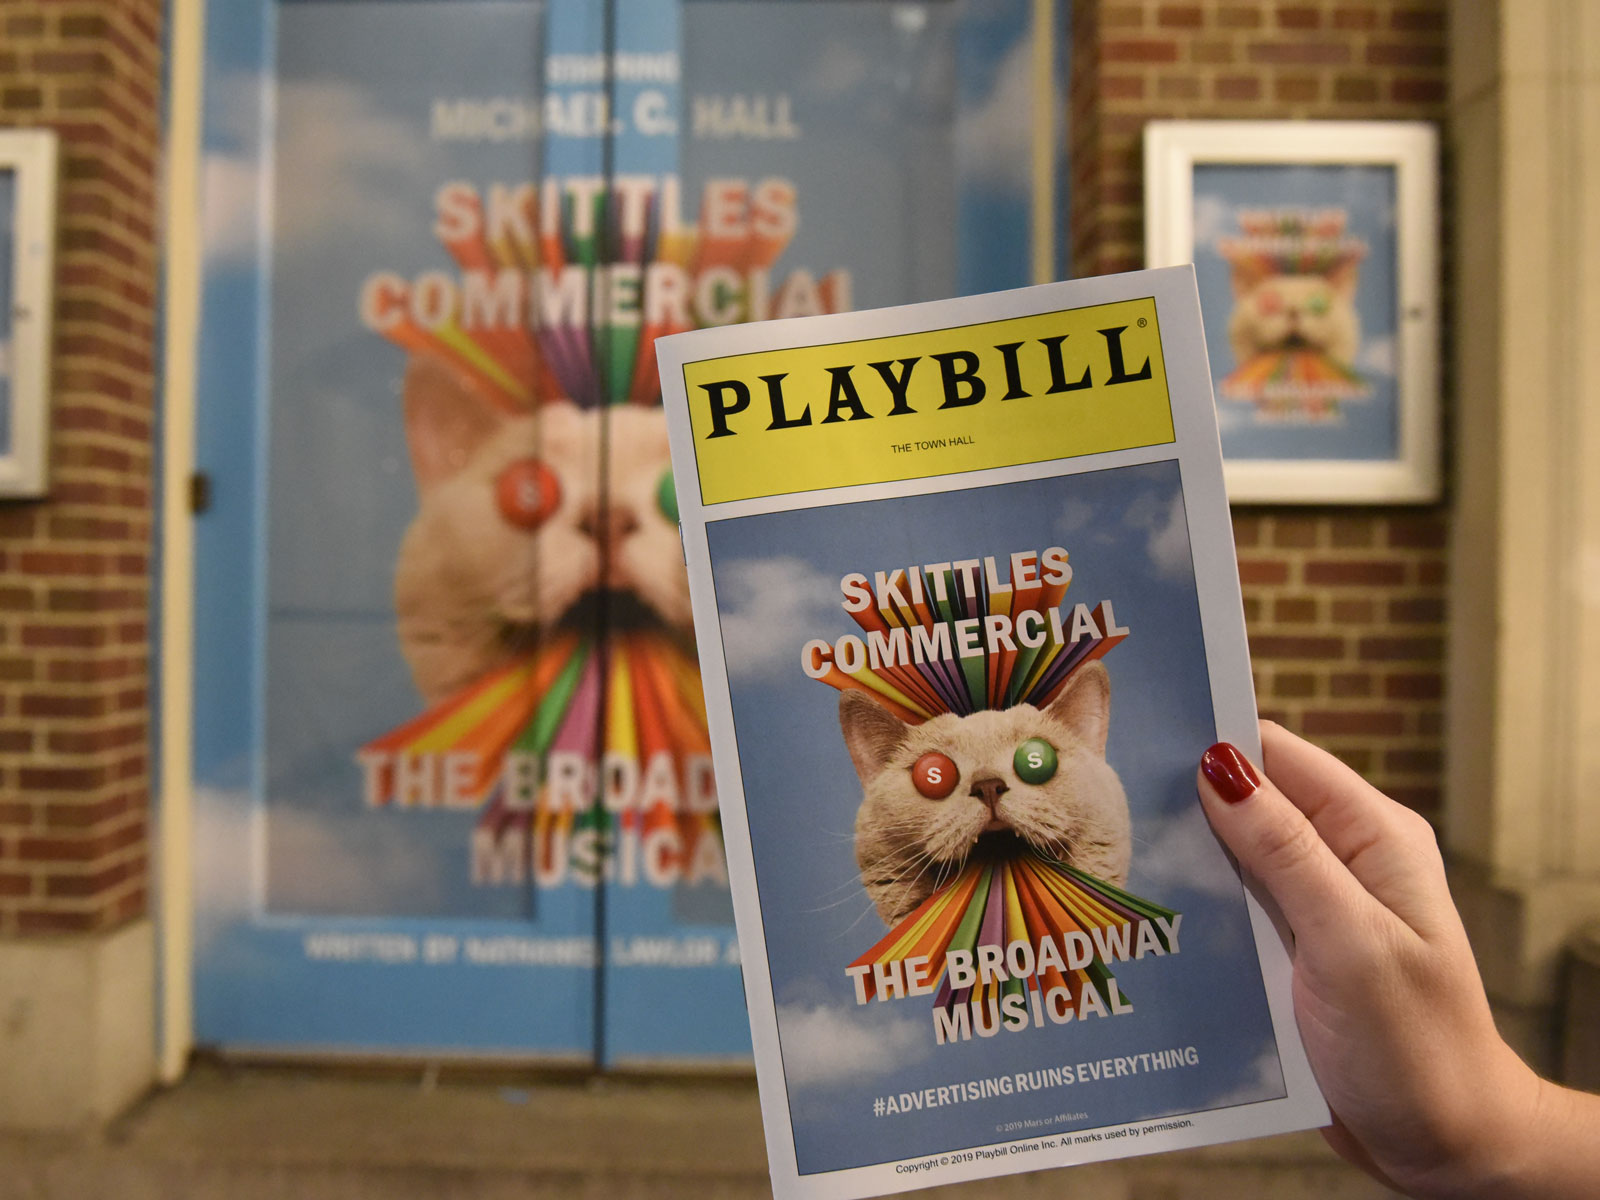 pop-culture-moments-2019-skittles-musical-review-2-FT-BLOG0119.jpg